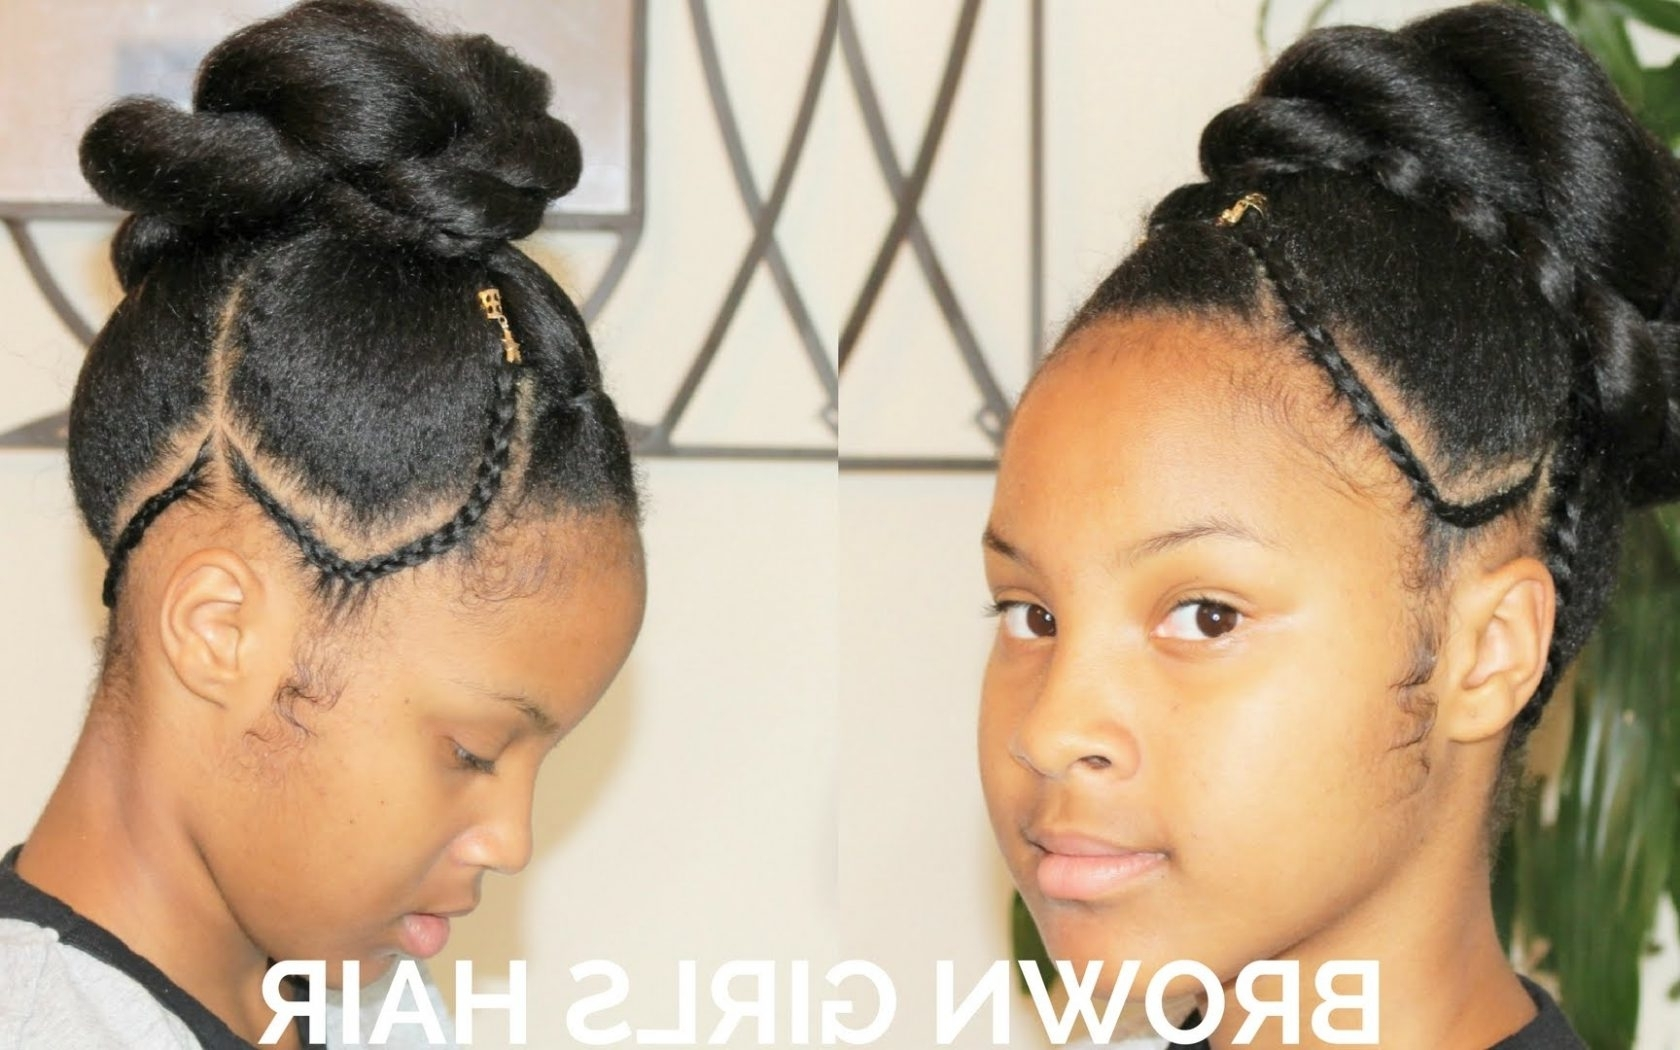 All Hair Makeover African Ponytail Cornrow Allhairmakeover Updo Best Throughout Updo Twist Hairstyles For Natural Hair (View 15 of 15)